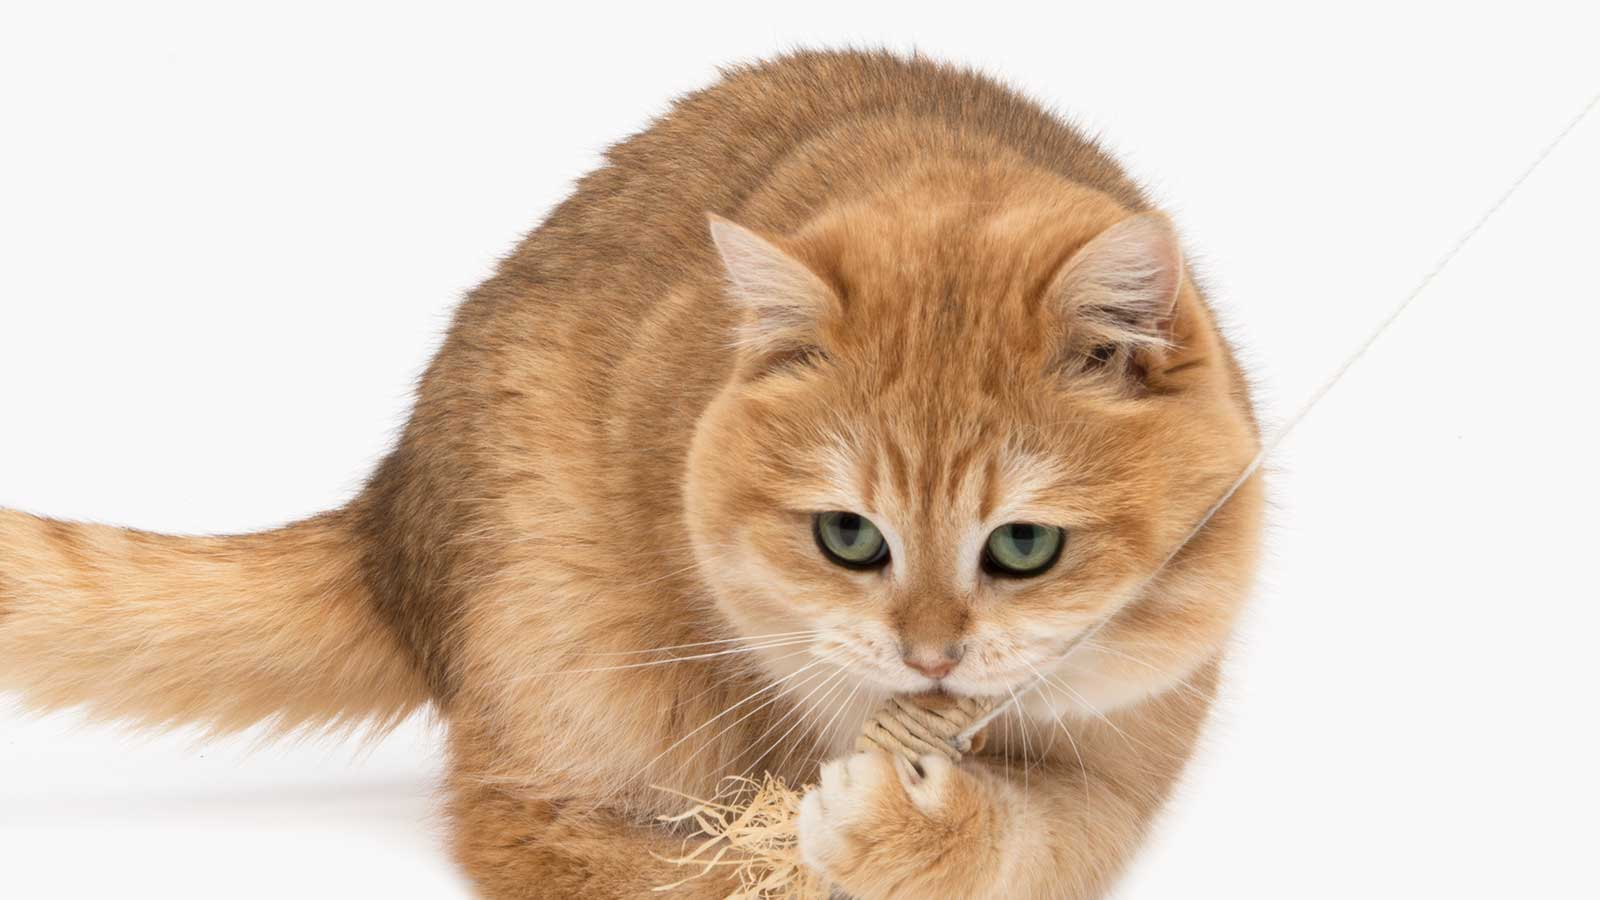 Ginger cat playing with a cat toy